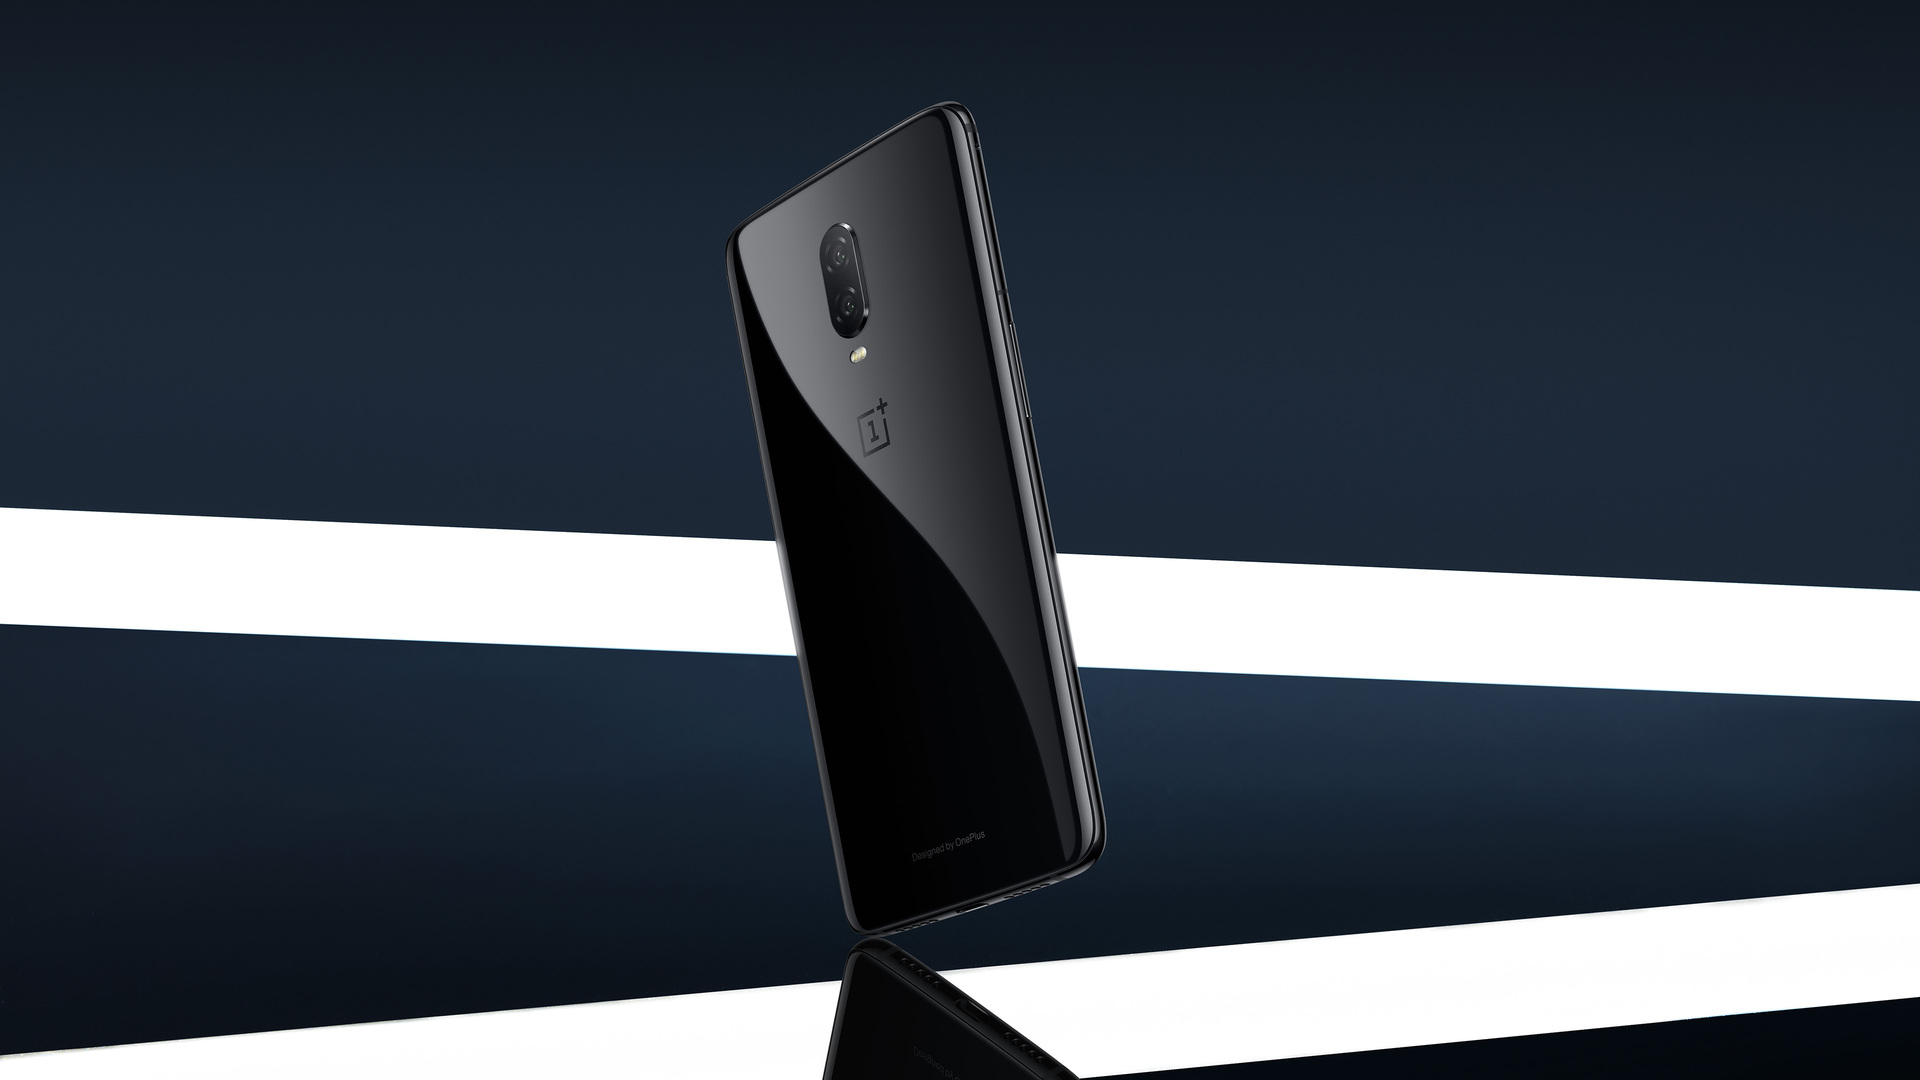 OnePlus-6T-mobile-phone